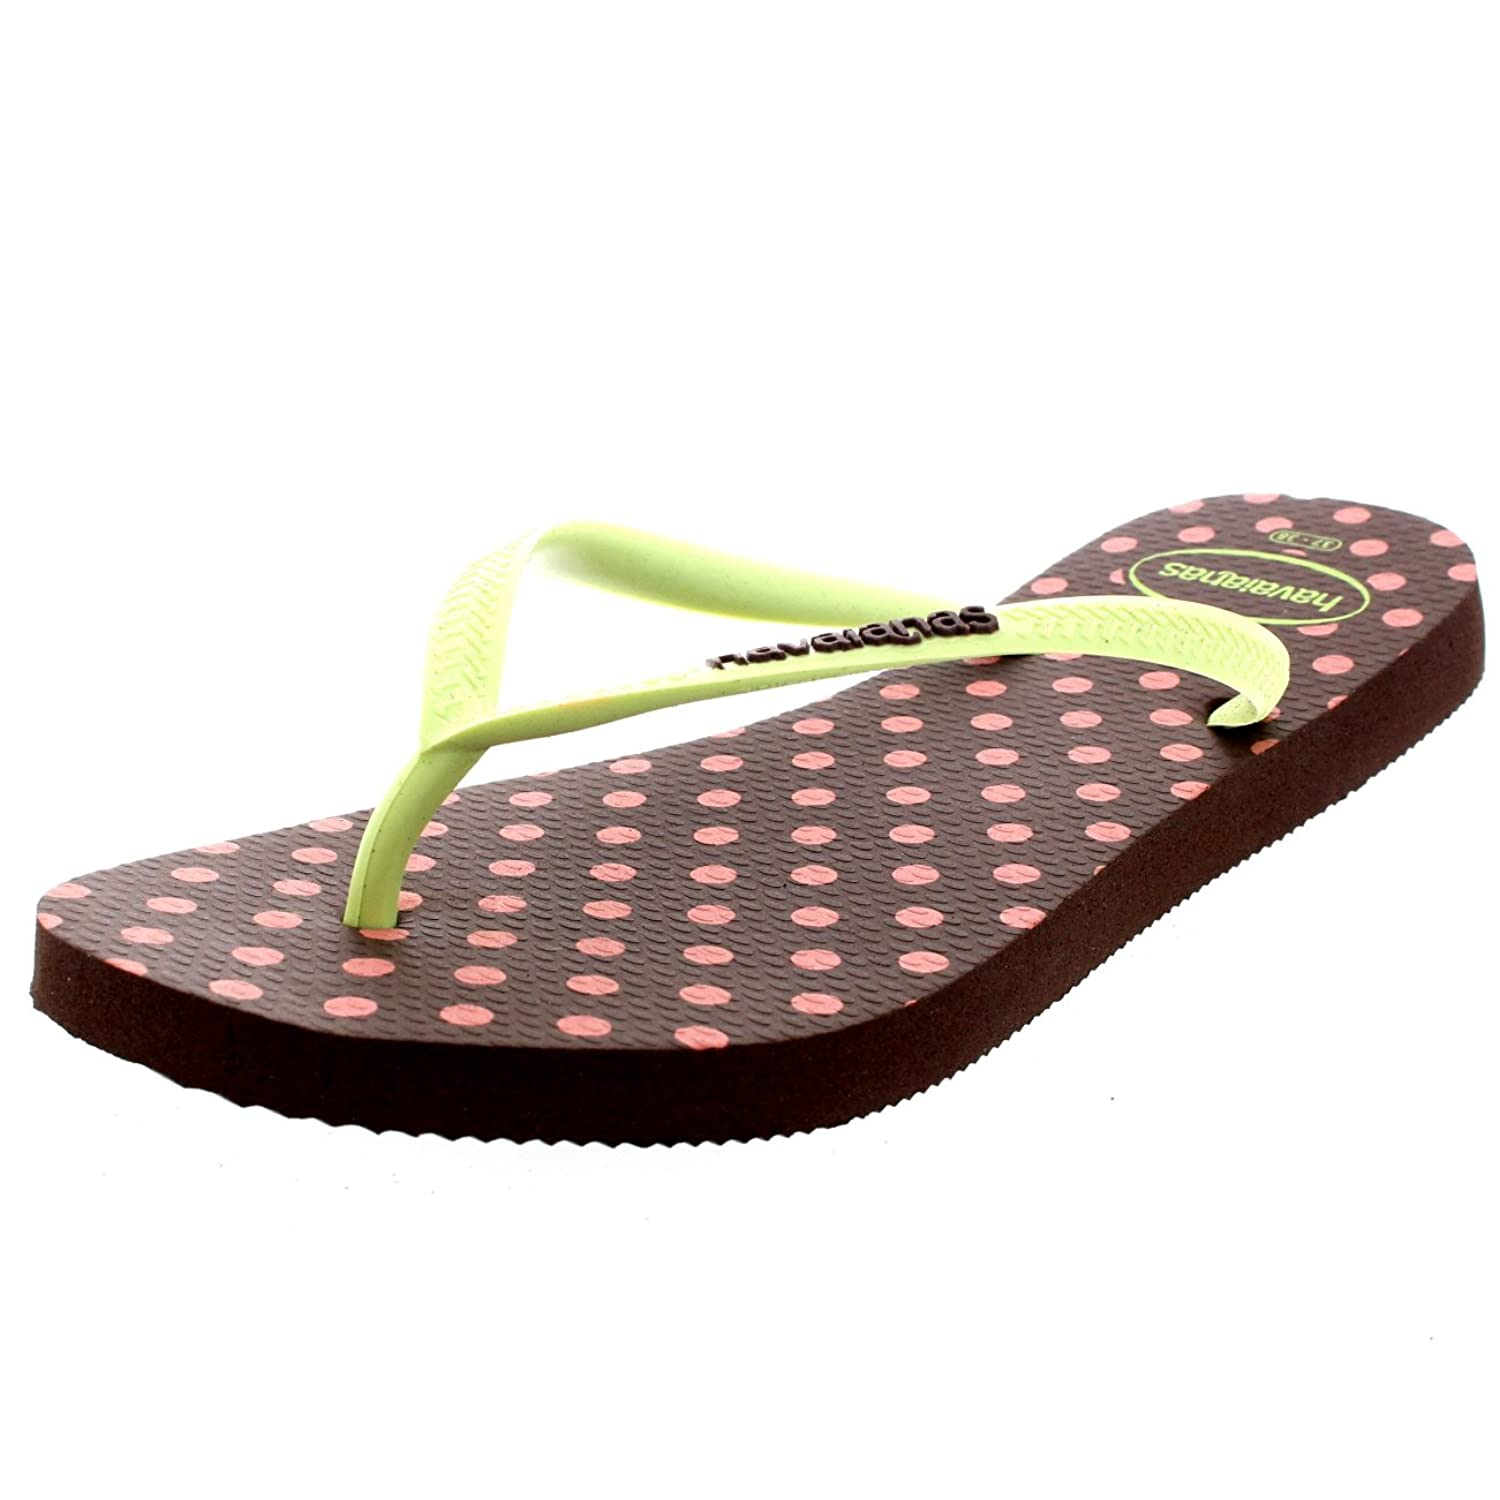 Womens Haviannas Slim Fresh Pop Up Casual Beach Holiday Flip Flop Sandals:  Amazon.co.uk: Shoes & Bags